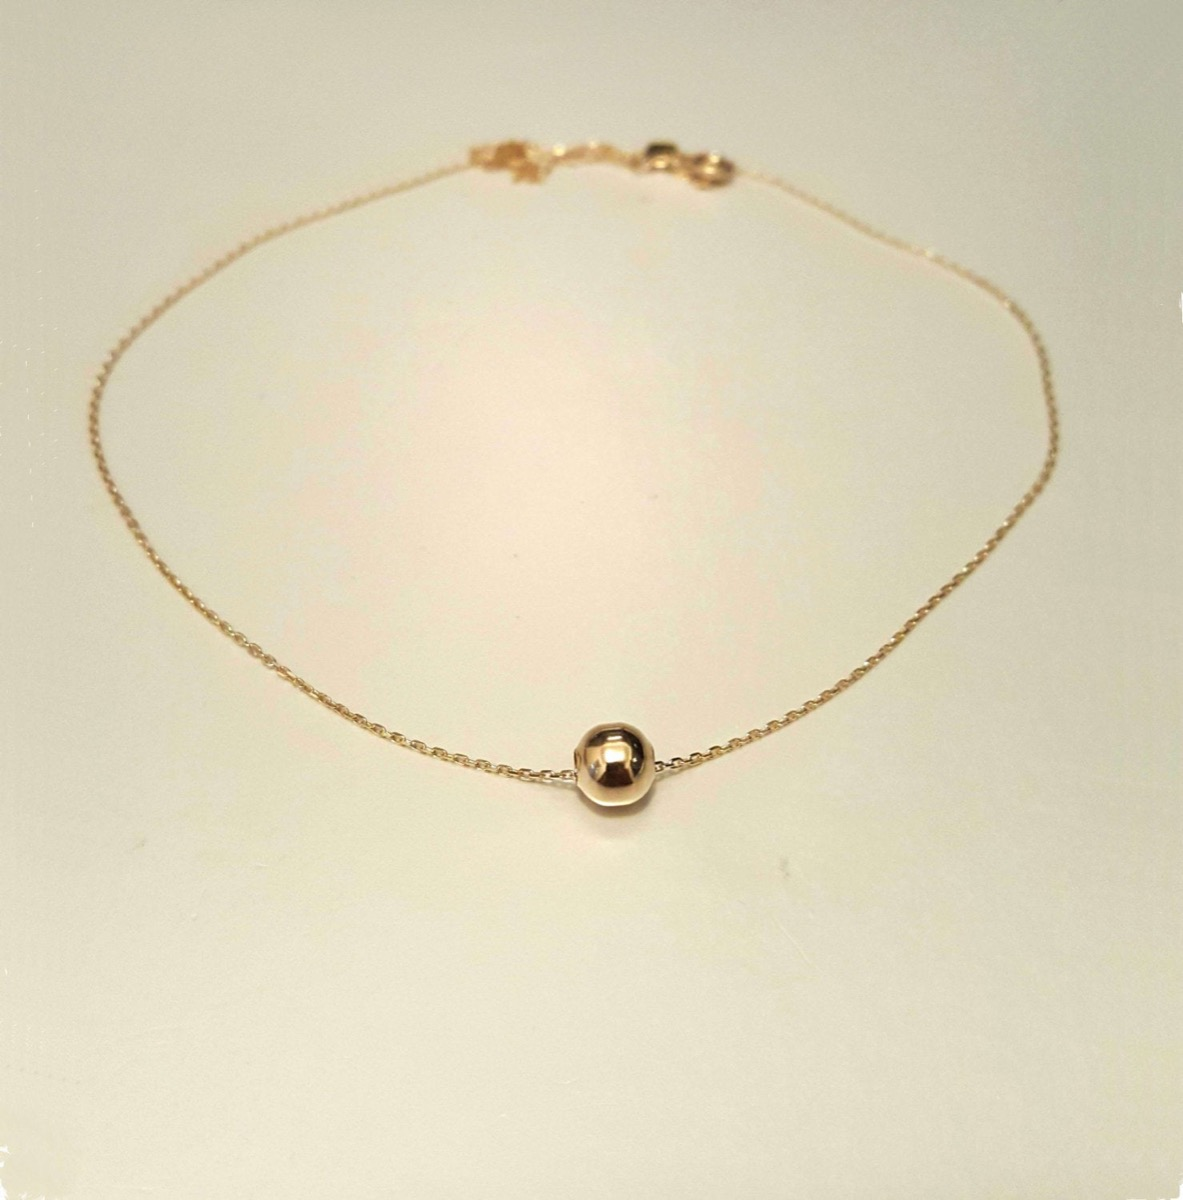 gold ball on gold chain bracelet, Etsy jewelry